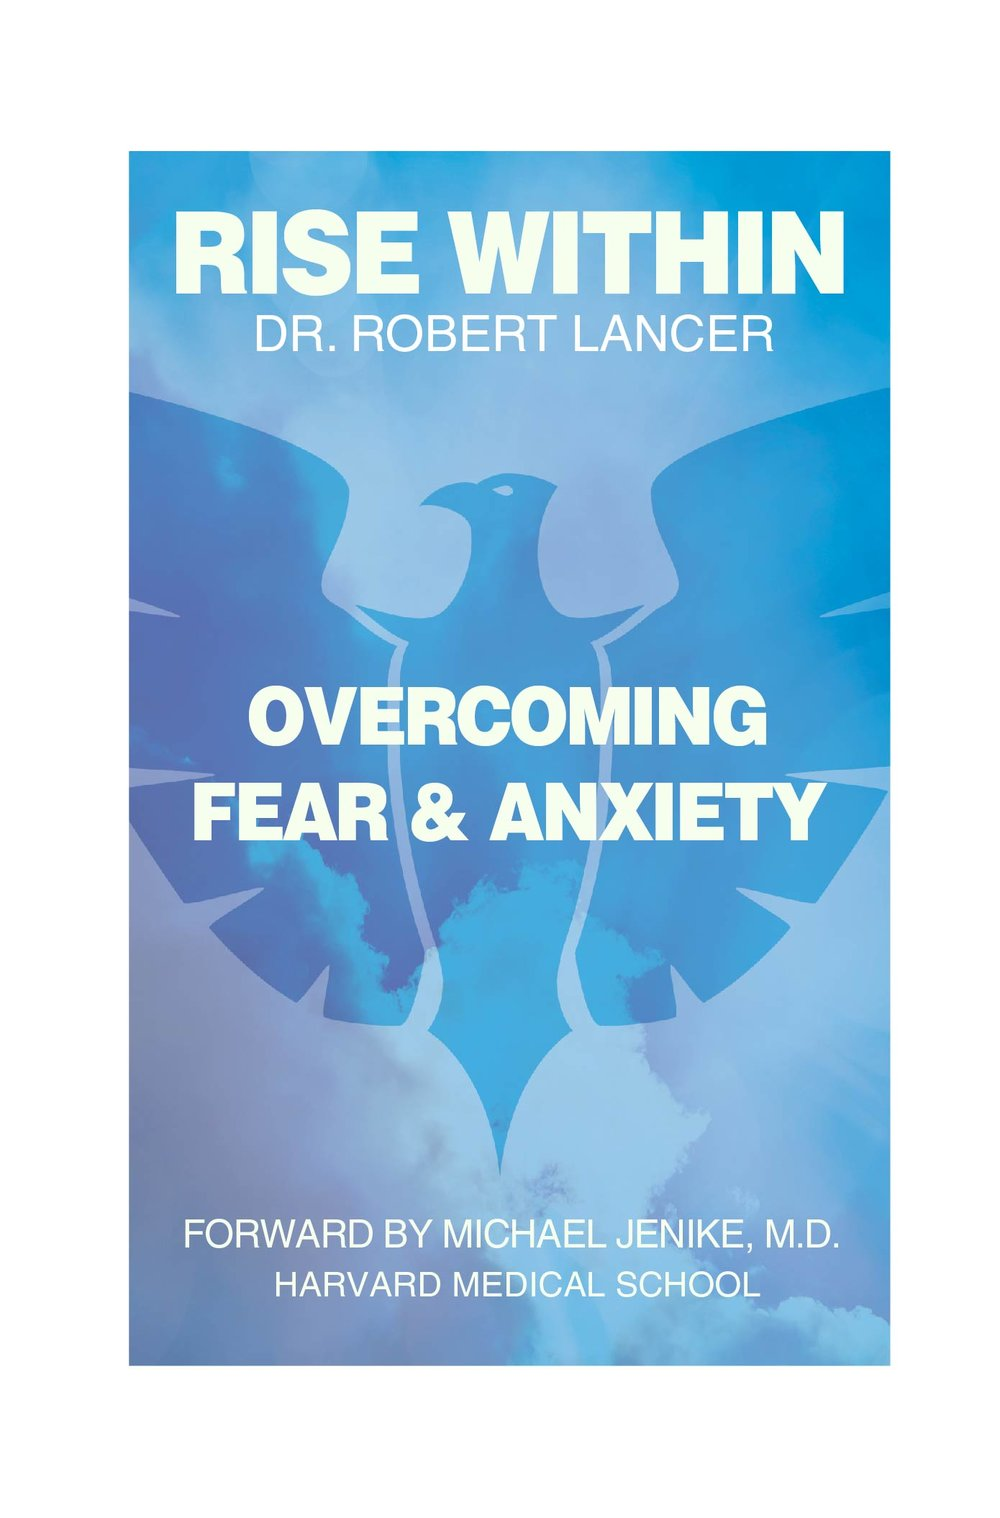 Rise withinOvercoming Fear & Anxiety - Over the years in my battle over anxiety, fear, and depression, I have learned a lot not only about myself, but also volumes on anxiety and fear. I came to the understanding that in life we all have internal struggles. However, the major key difference is that they occur at varying degrees. Anxiety is one of the eight basic emotions we all feel. At some level, anxiety is an everyday occurrence for us all. The anxious mind causes for shifts in thinking (negative to positive) and knocks the motivation out of people to take chances. A state of mental paralysis can occur transforming the simplest of tasks into the realm of virtually impossible. This book helps readers understand that they are not alone in their suffering and that help is available.